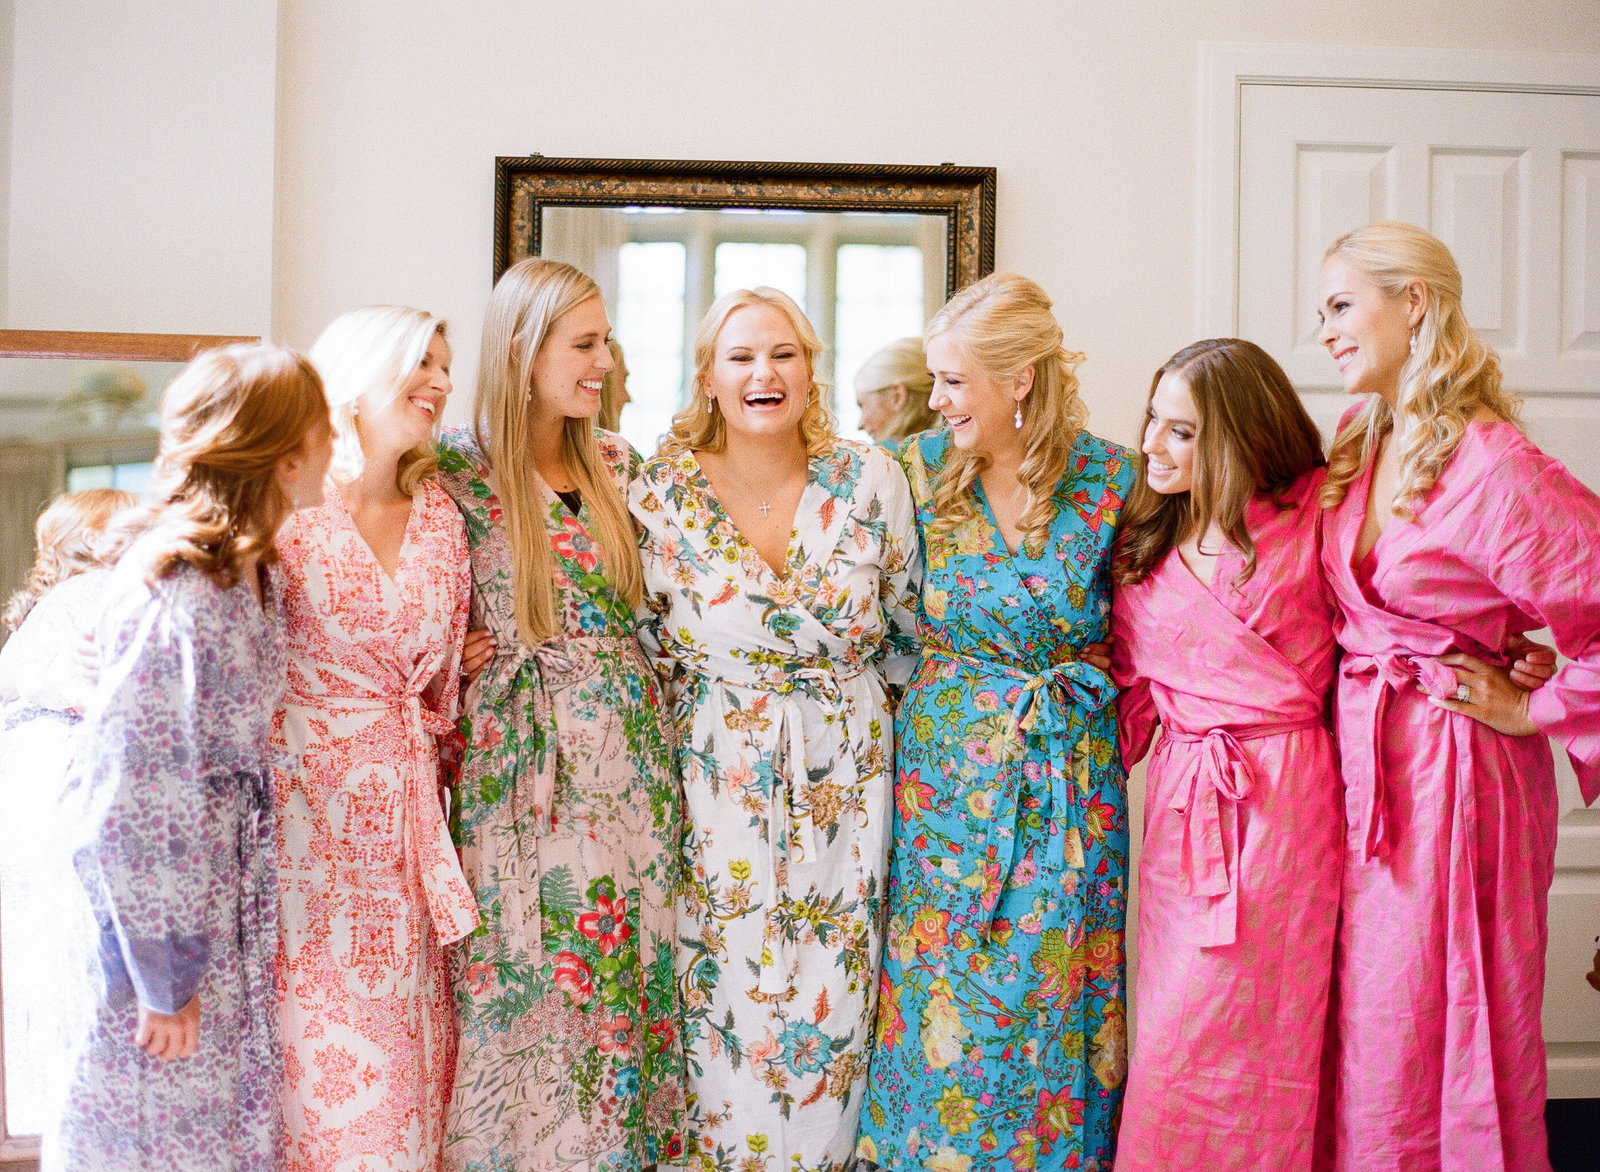 bridesmaids in colorful robes getting ready for a wedding